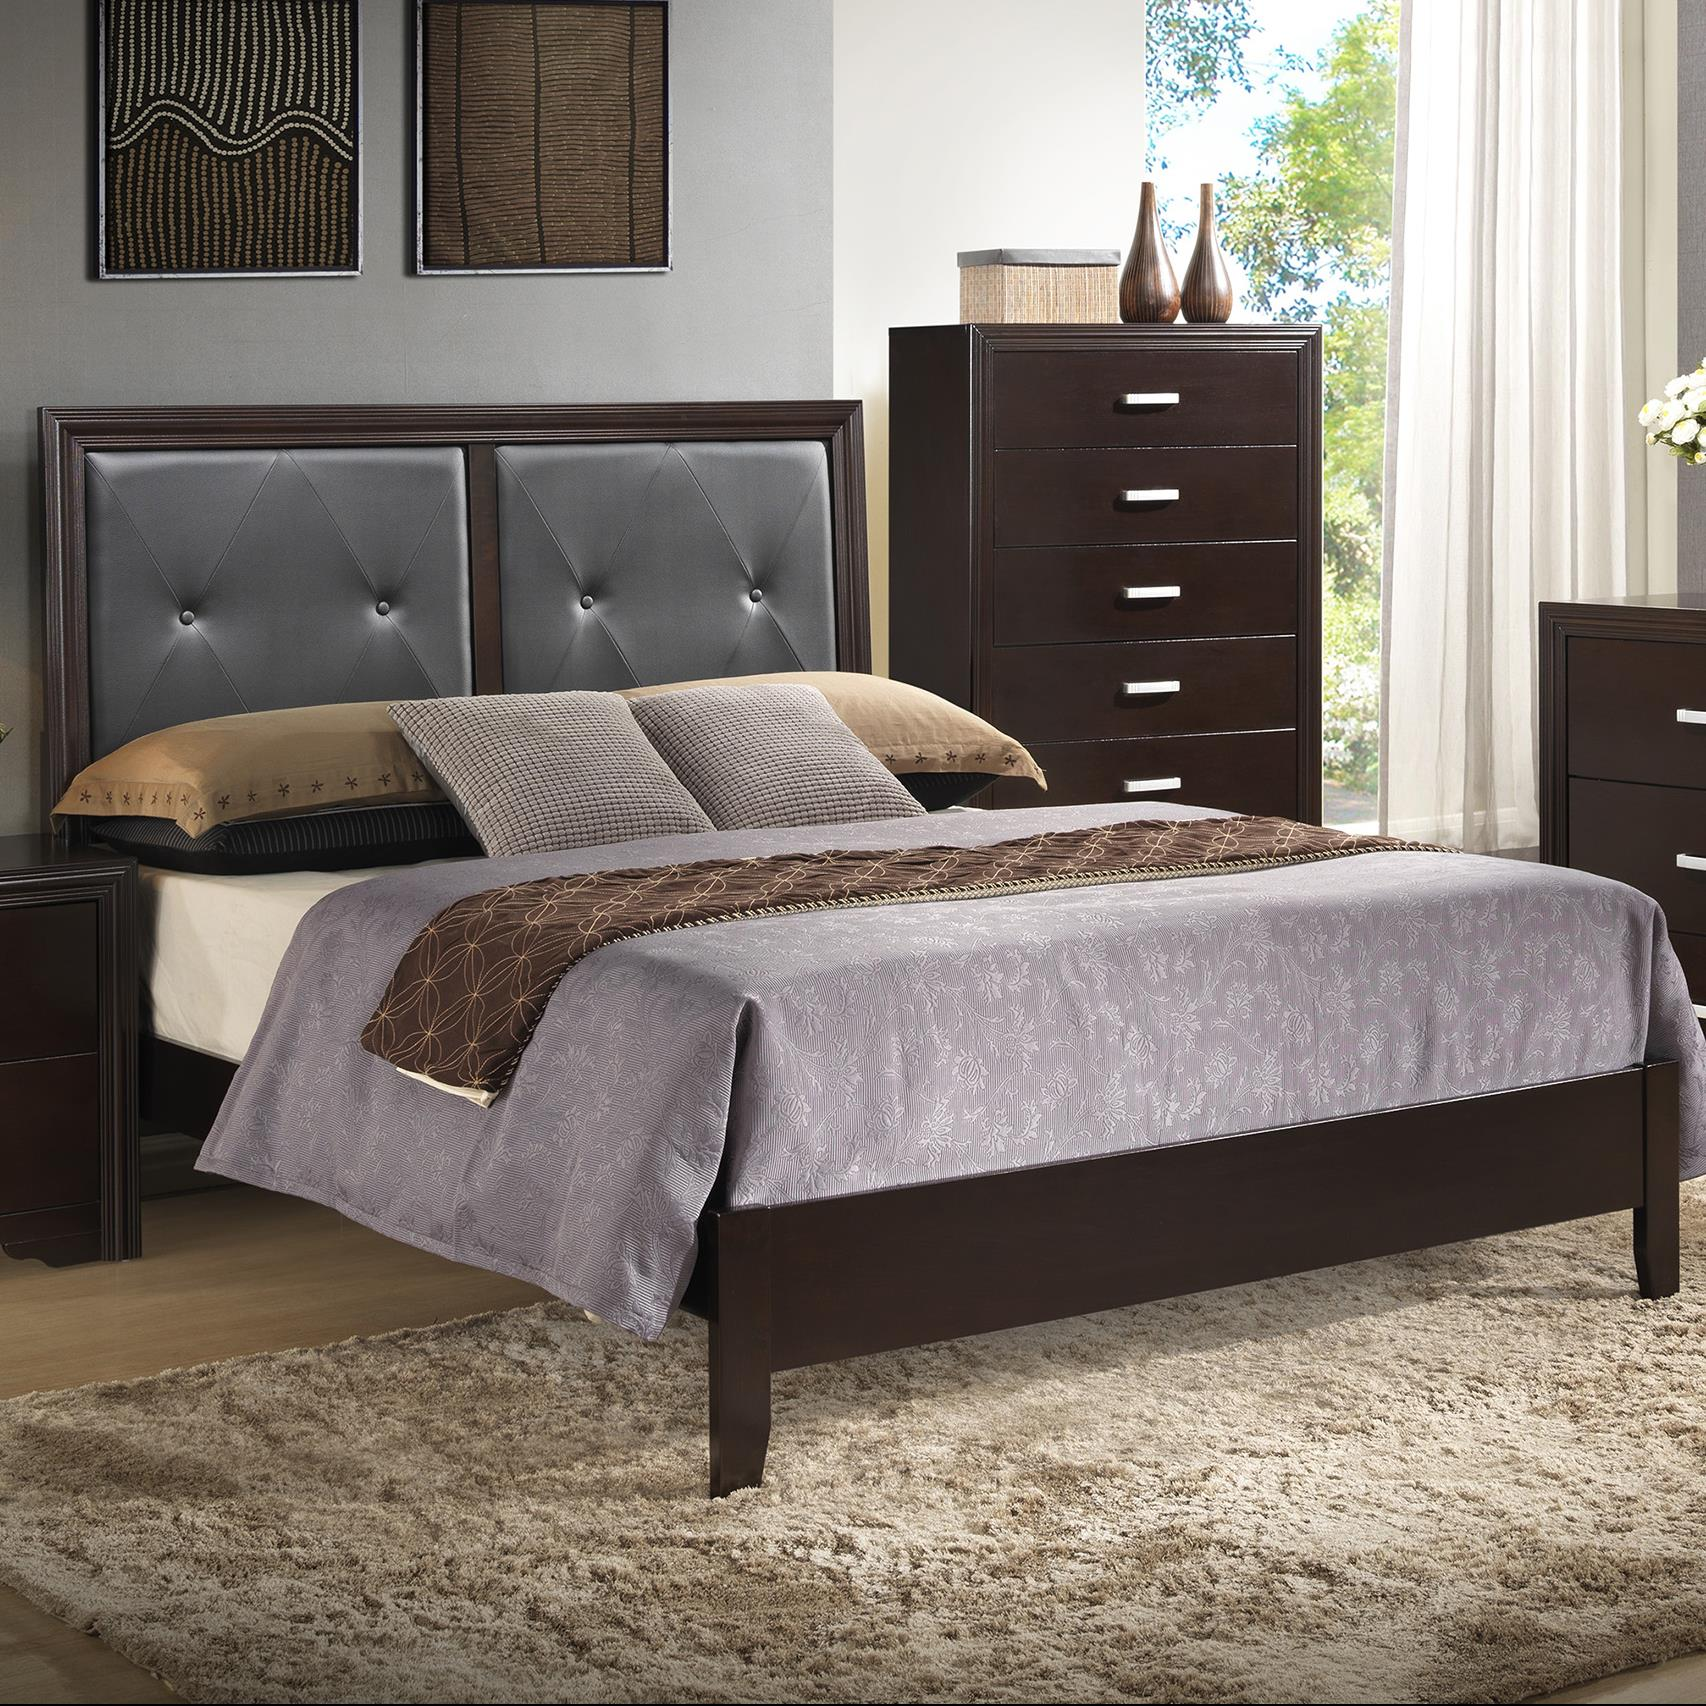 Crown Mark Elijah Queen Upholstered Bed - Item Number: B5300-KQ-RAIL+B5300-Q-HBFB